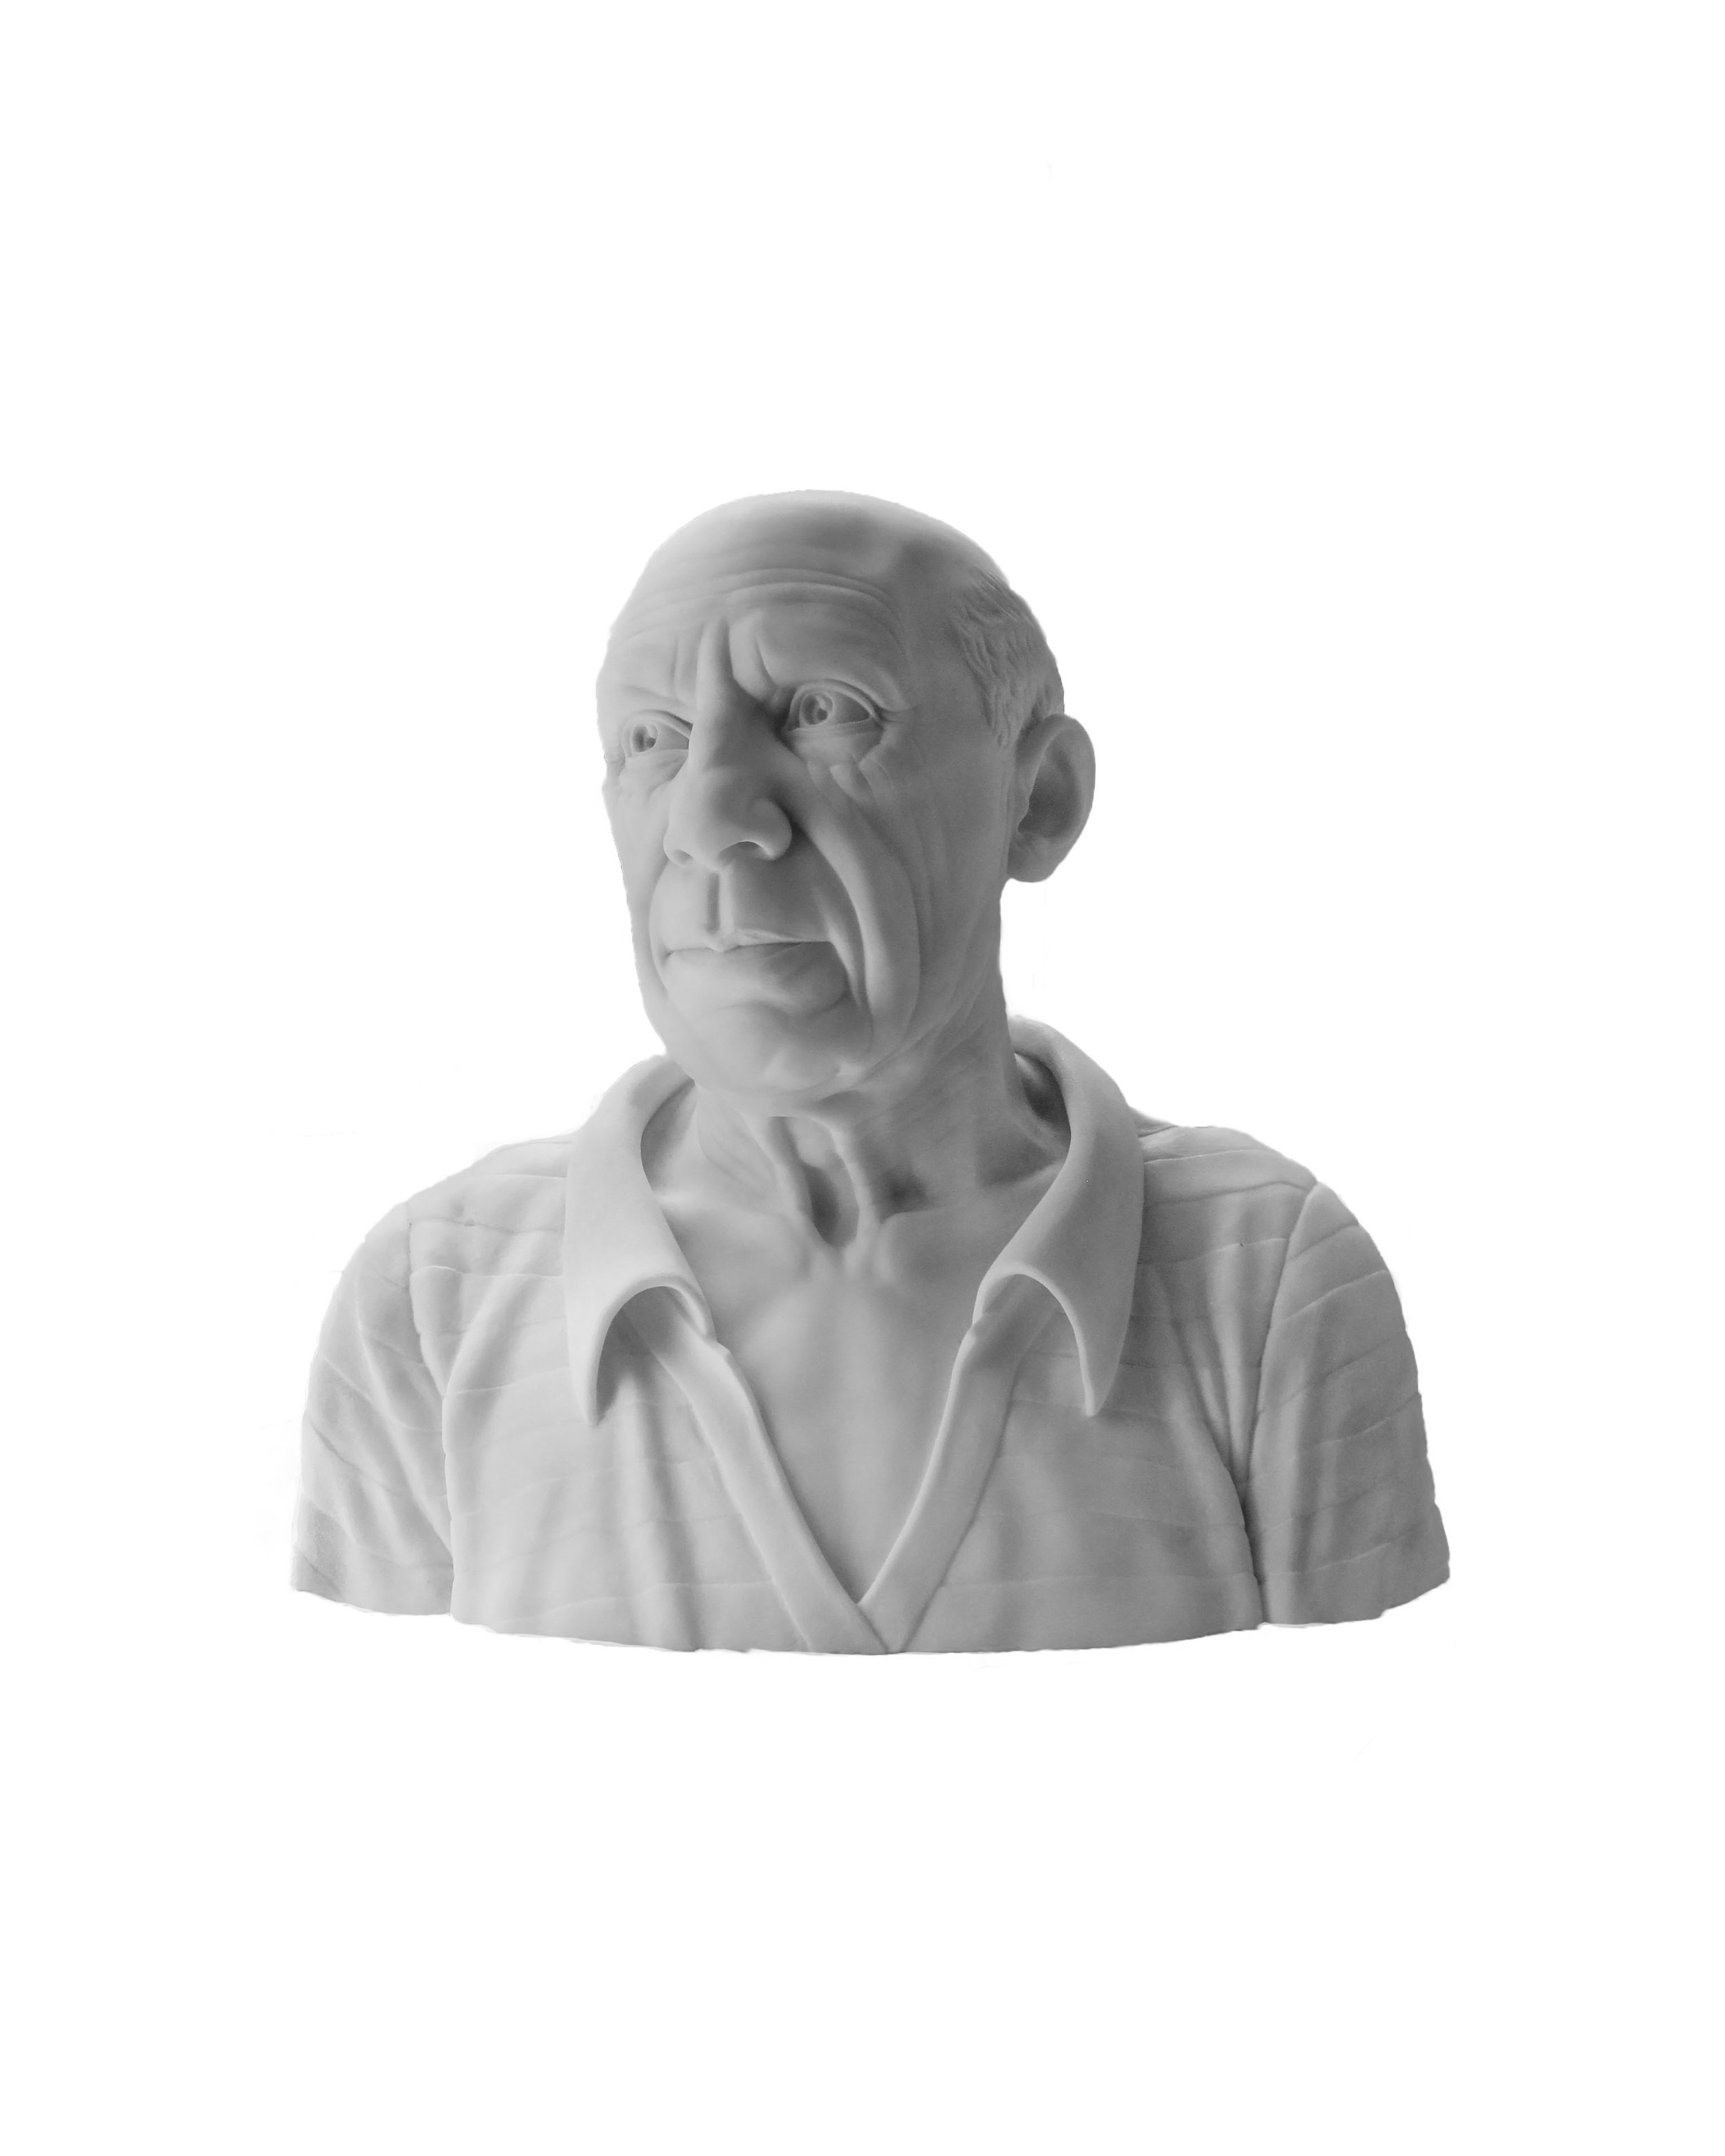 North American Sculpture Collective   Pablo Picasso Bust , 2019  $41,000   VIEW DETAILS